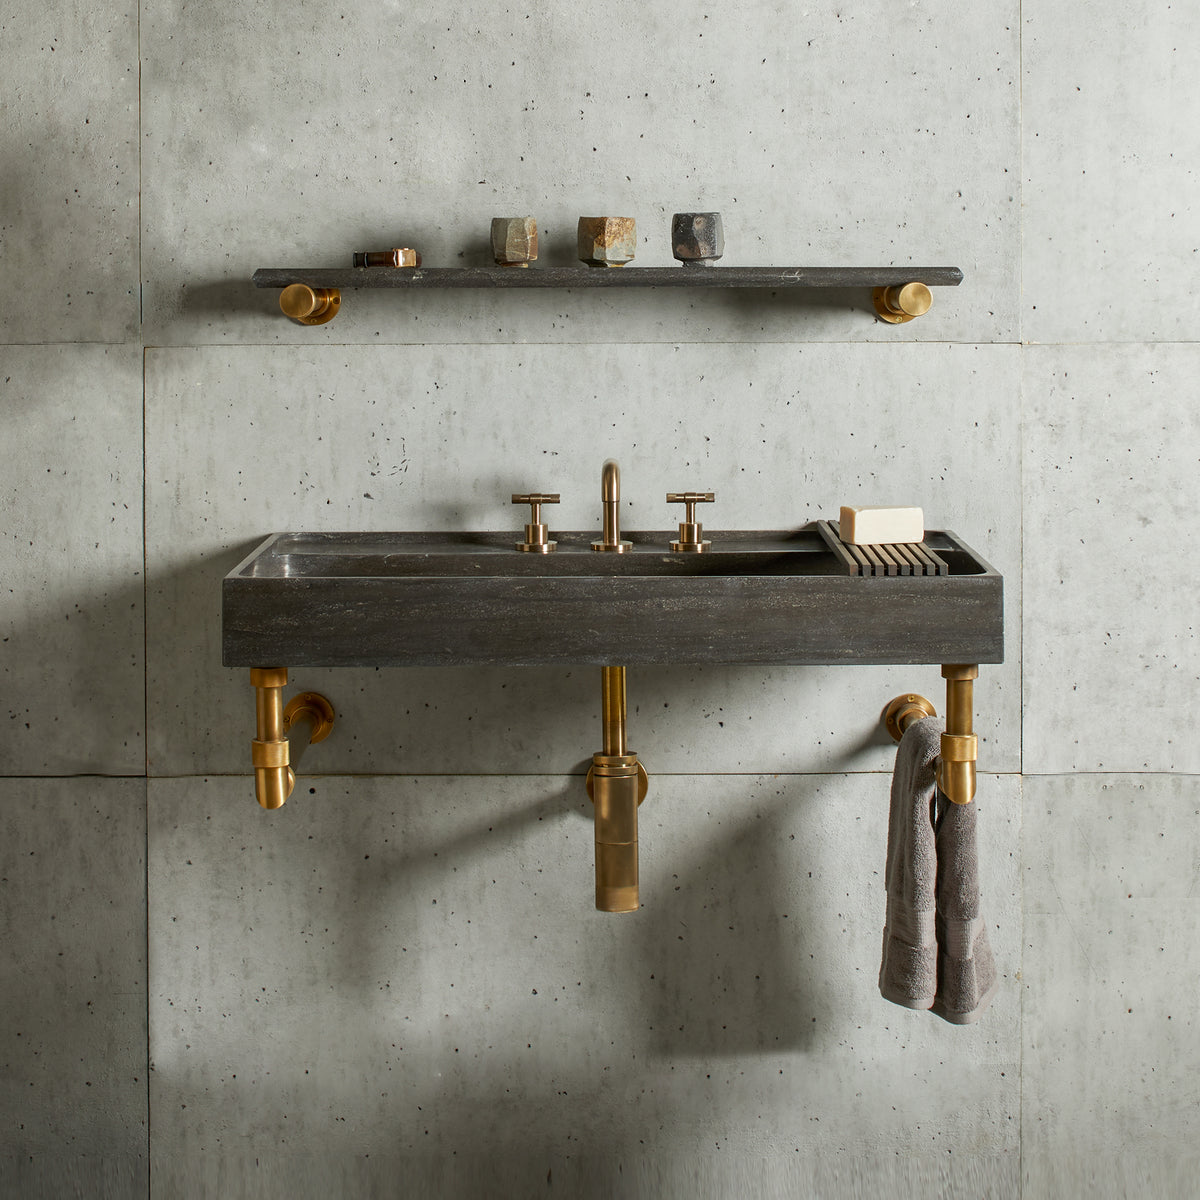 Ventus Bath Sink with Faucet Deck and Elemental Wall Unit